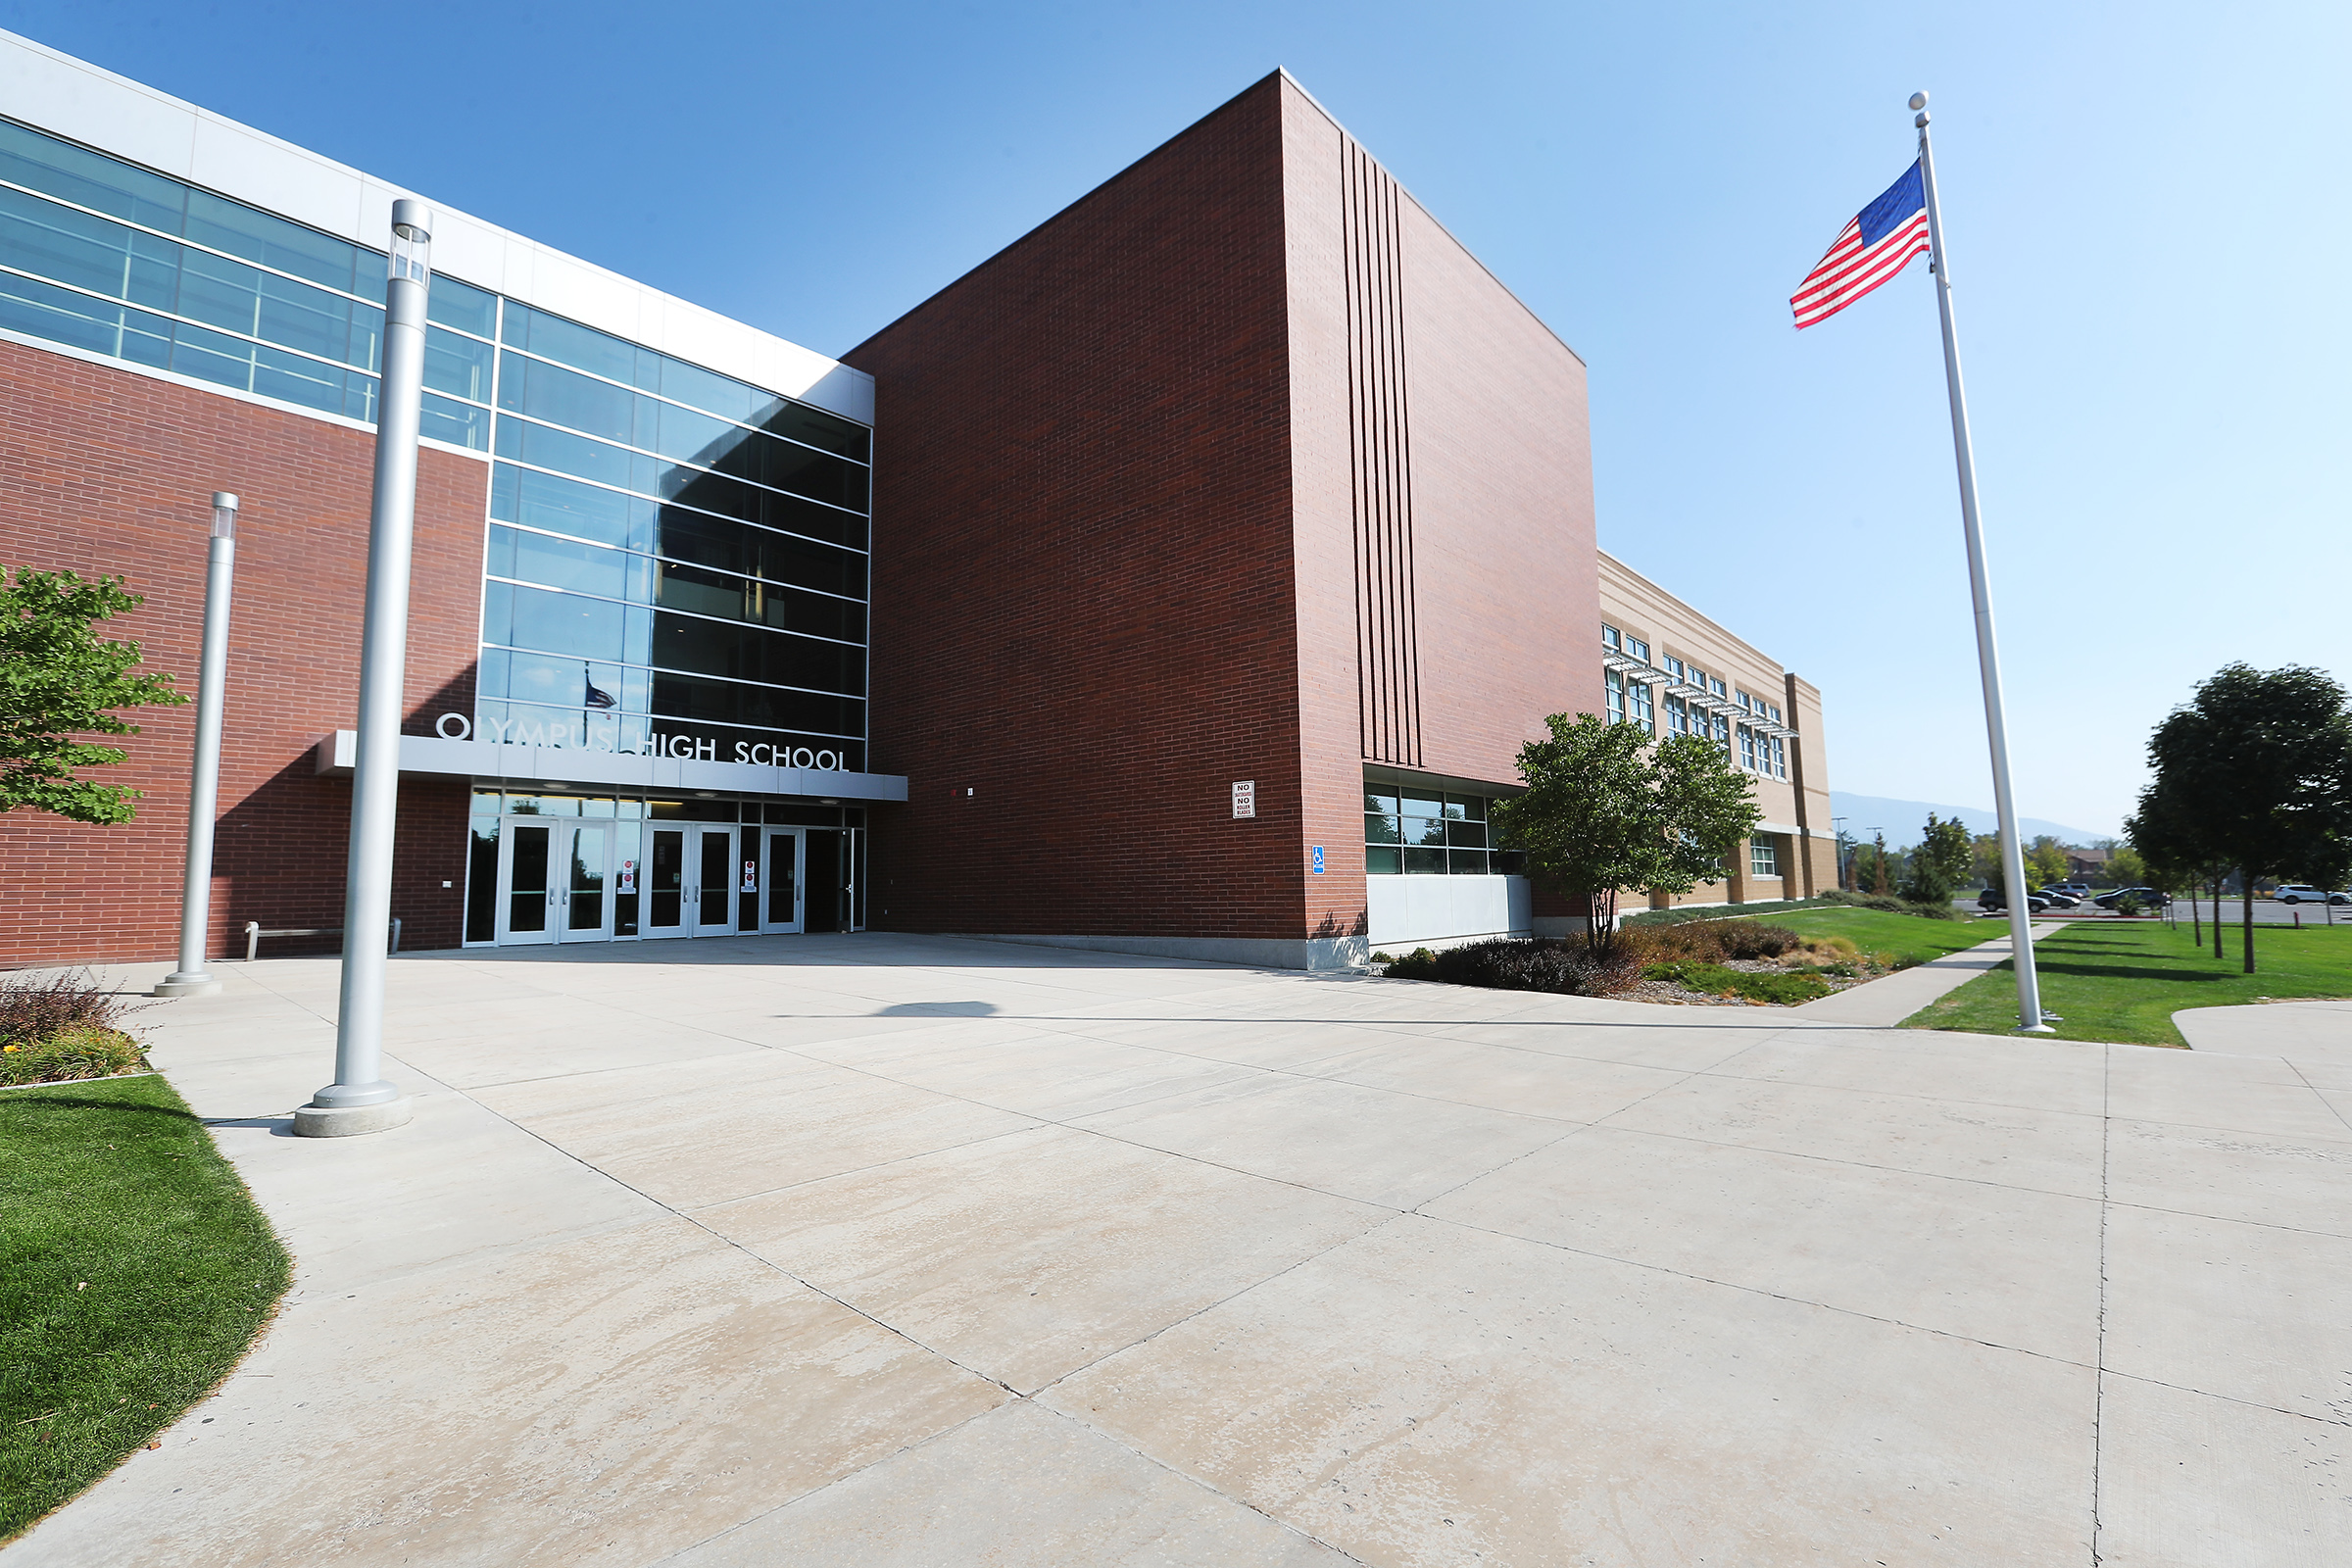 Olympus High School in Holladay is pictured on Monday, Sept. 21, 2020.